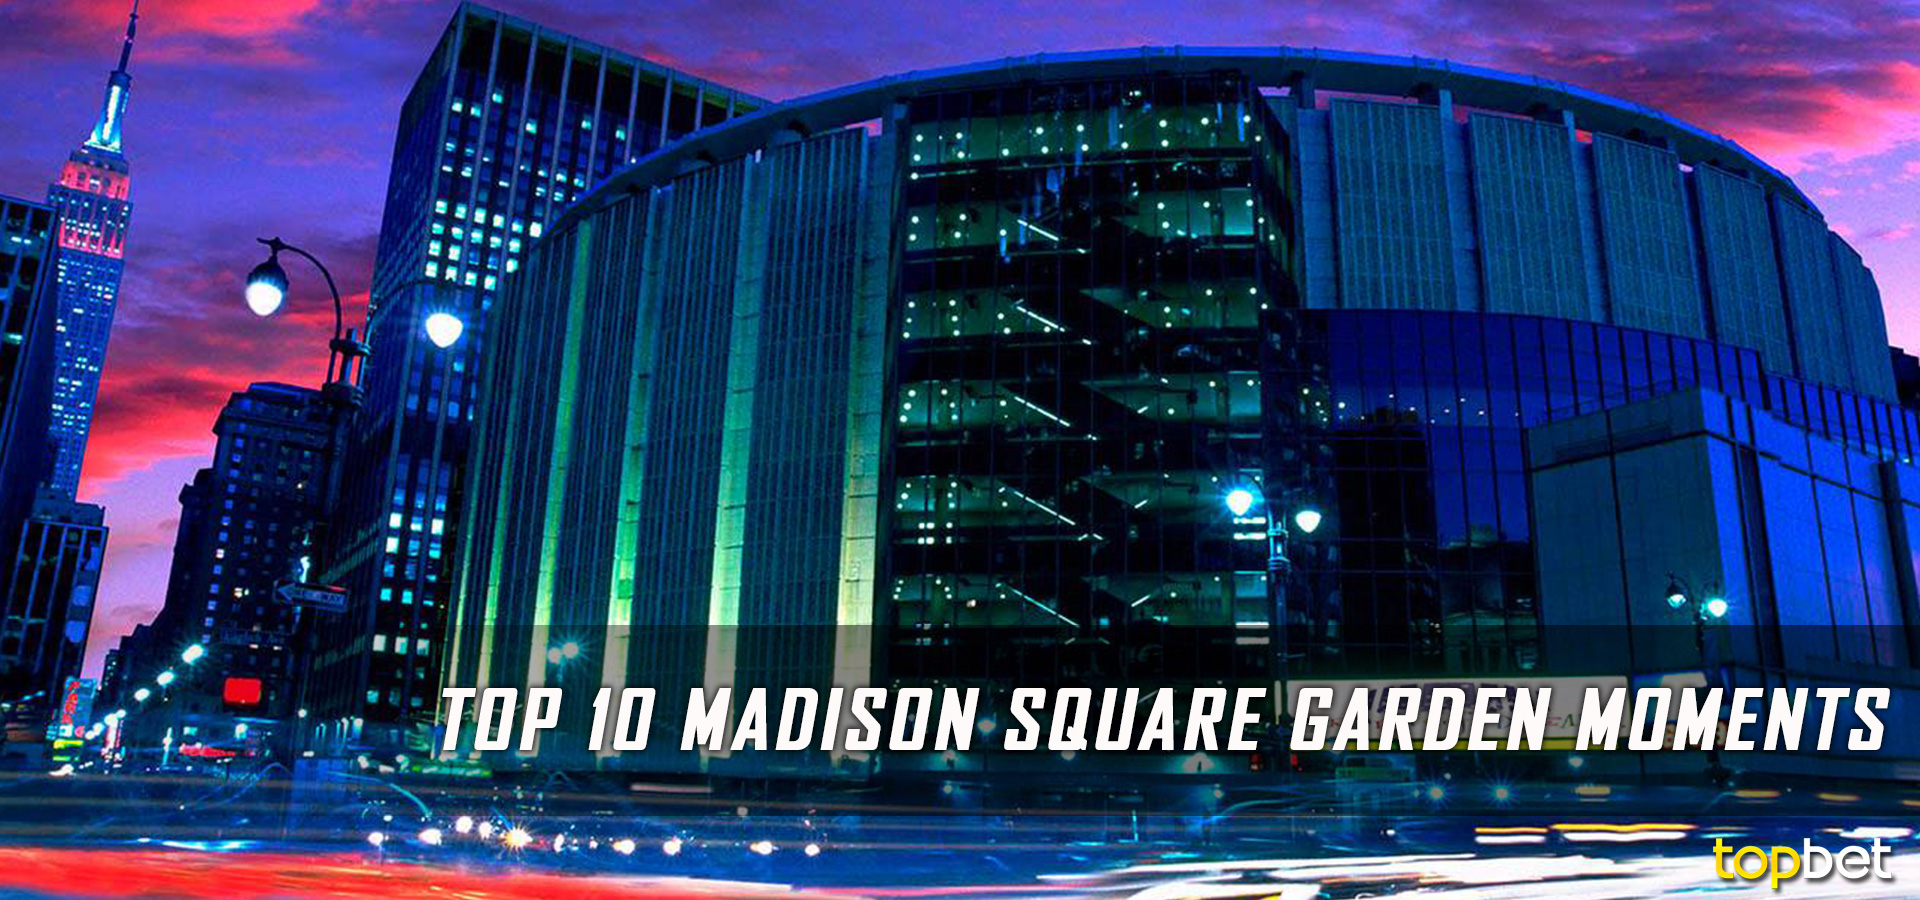 10 Best Madison Square Garden Moments Of All Time